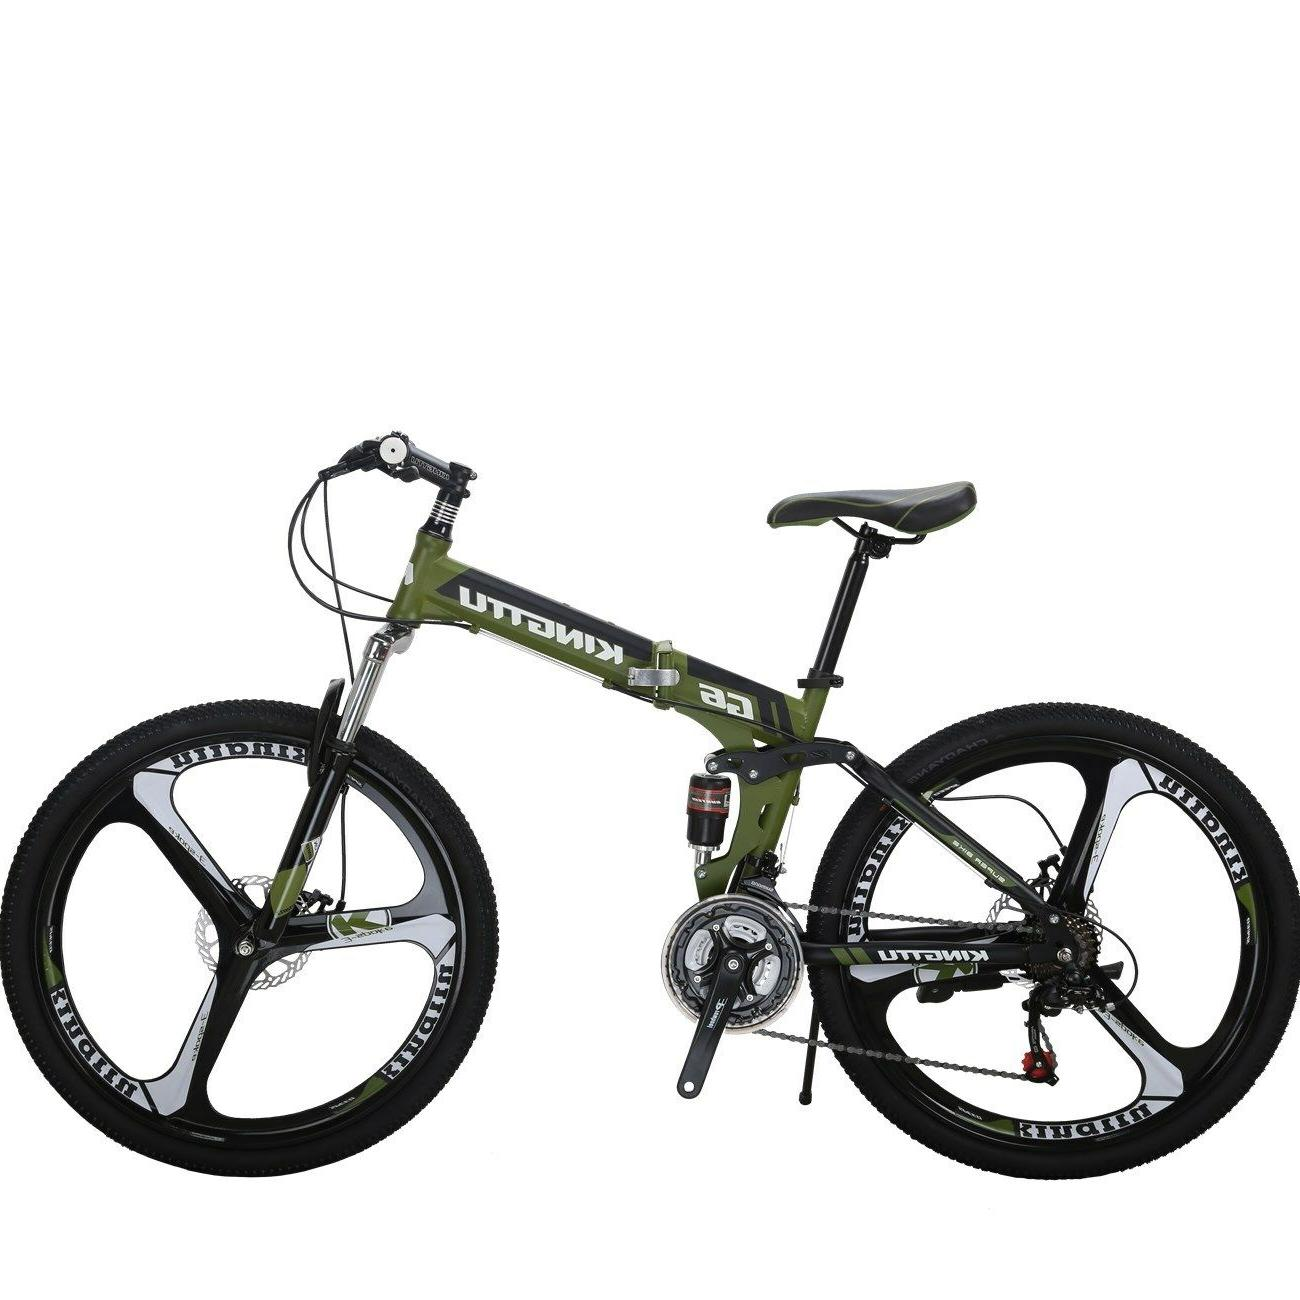 "G6 Mountain Bike 26"" 3 Spoke Wheel Full Suspension Folding 21 Speed Bicycle"